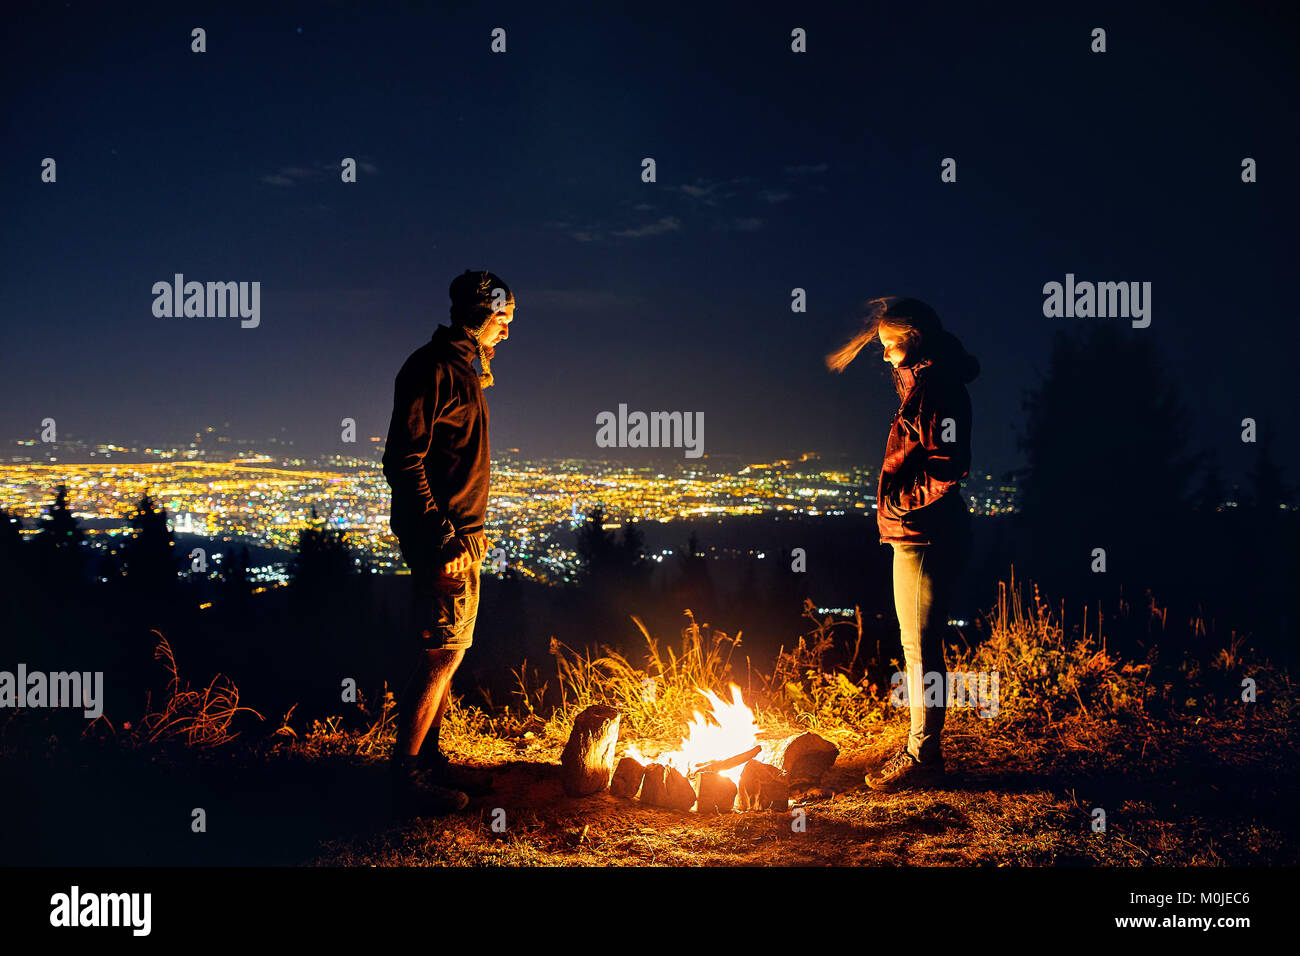 Happy couple hikers near campfire under night sky and city lights at background - Stock Image